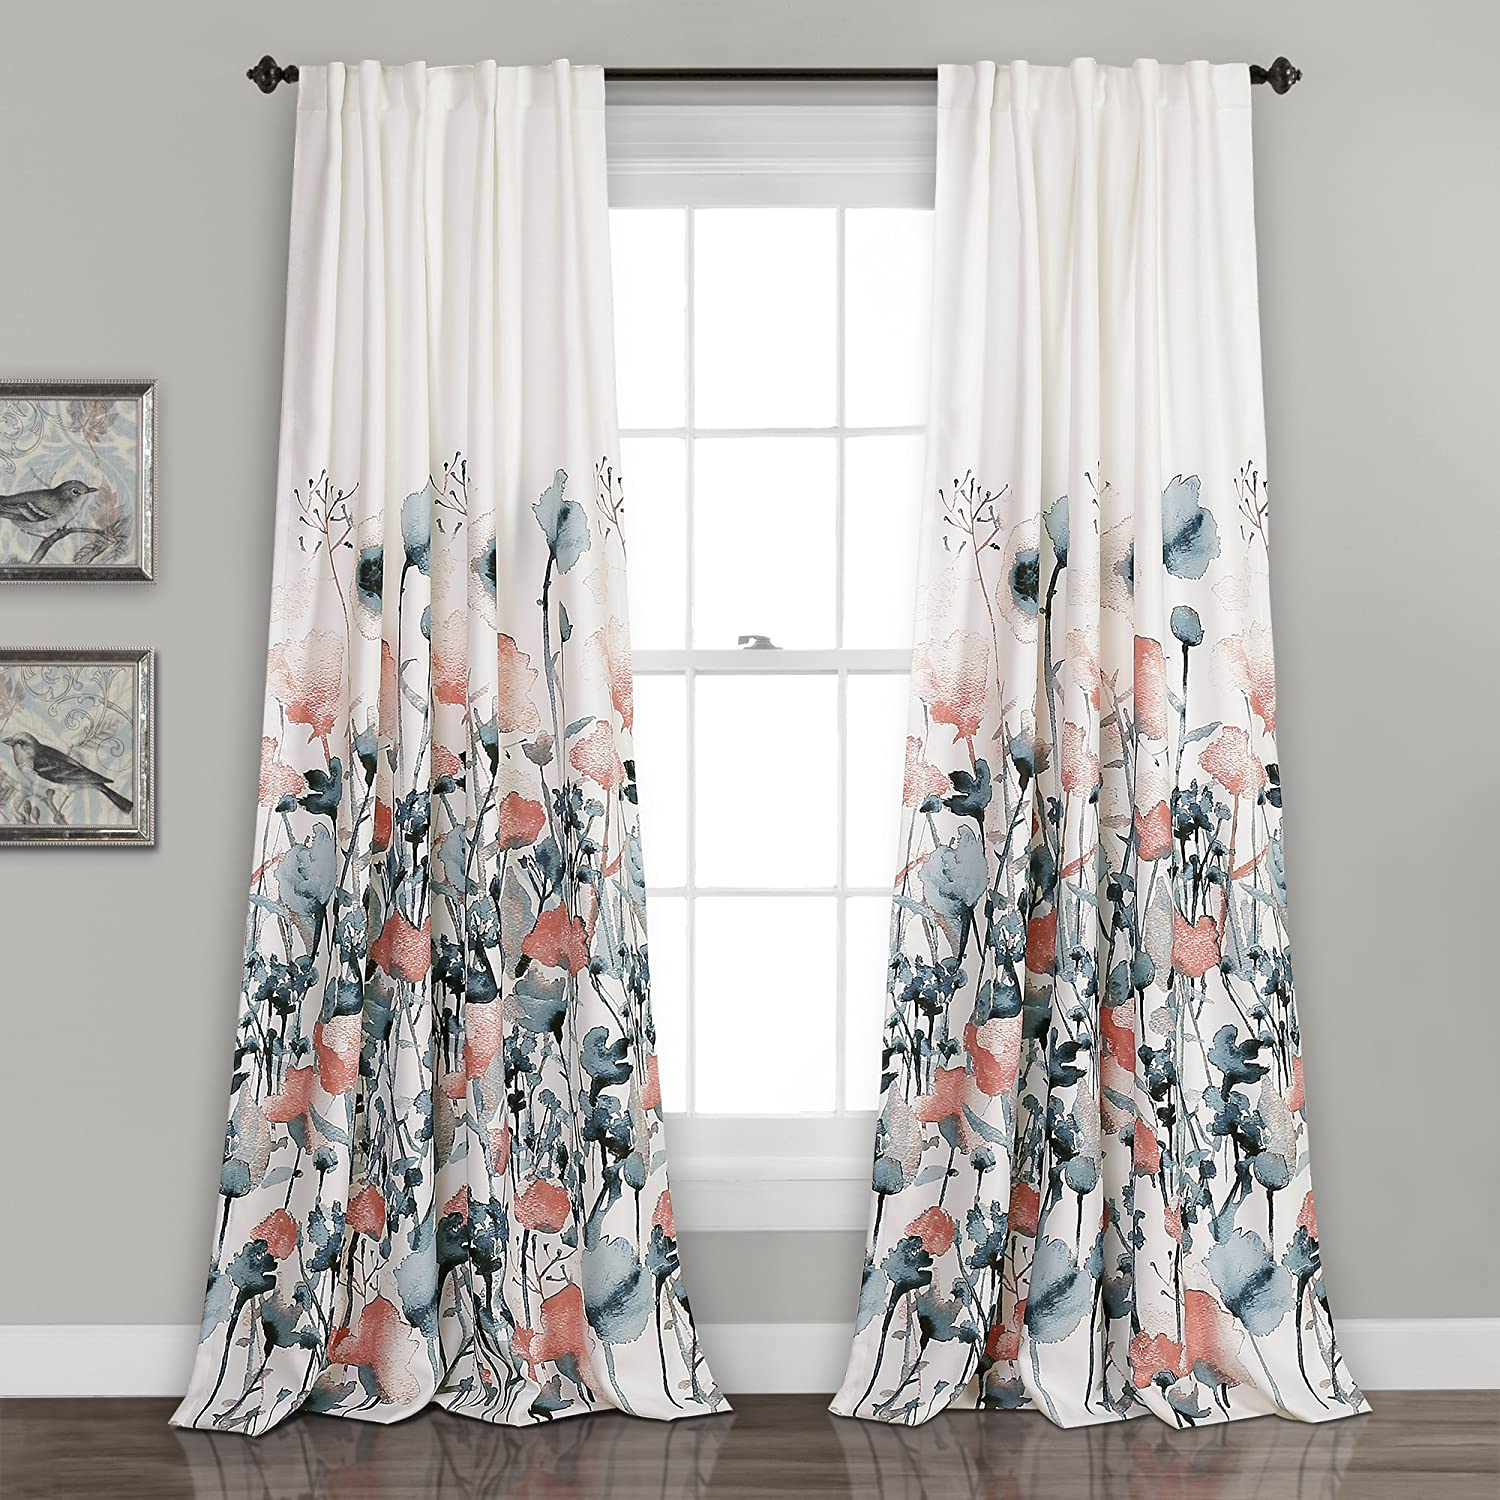 Amazon Com Lush Decor Zuri Flora Curtains Room Darkening Window Panel Set For Living Dining Bedroom Pair 84 X 52 Blue And Coral 2 Count Home Kitchen